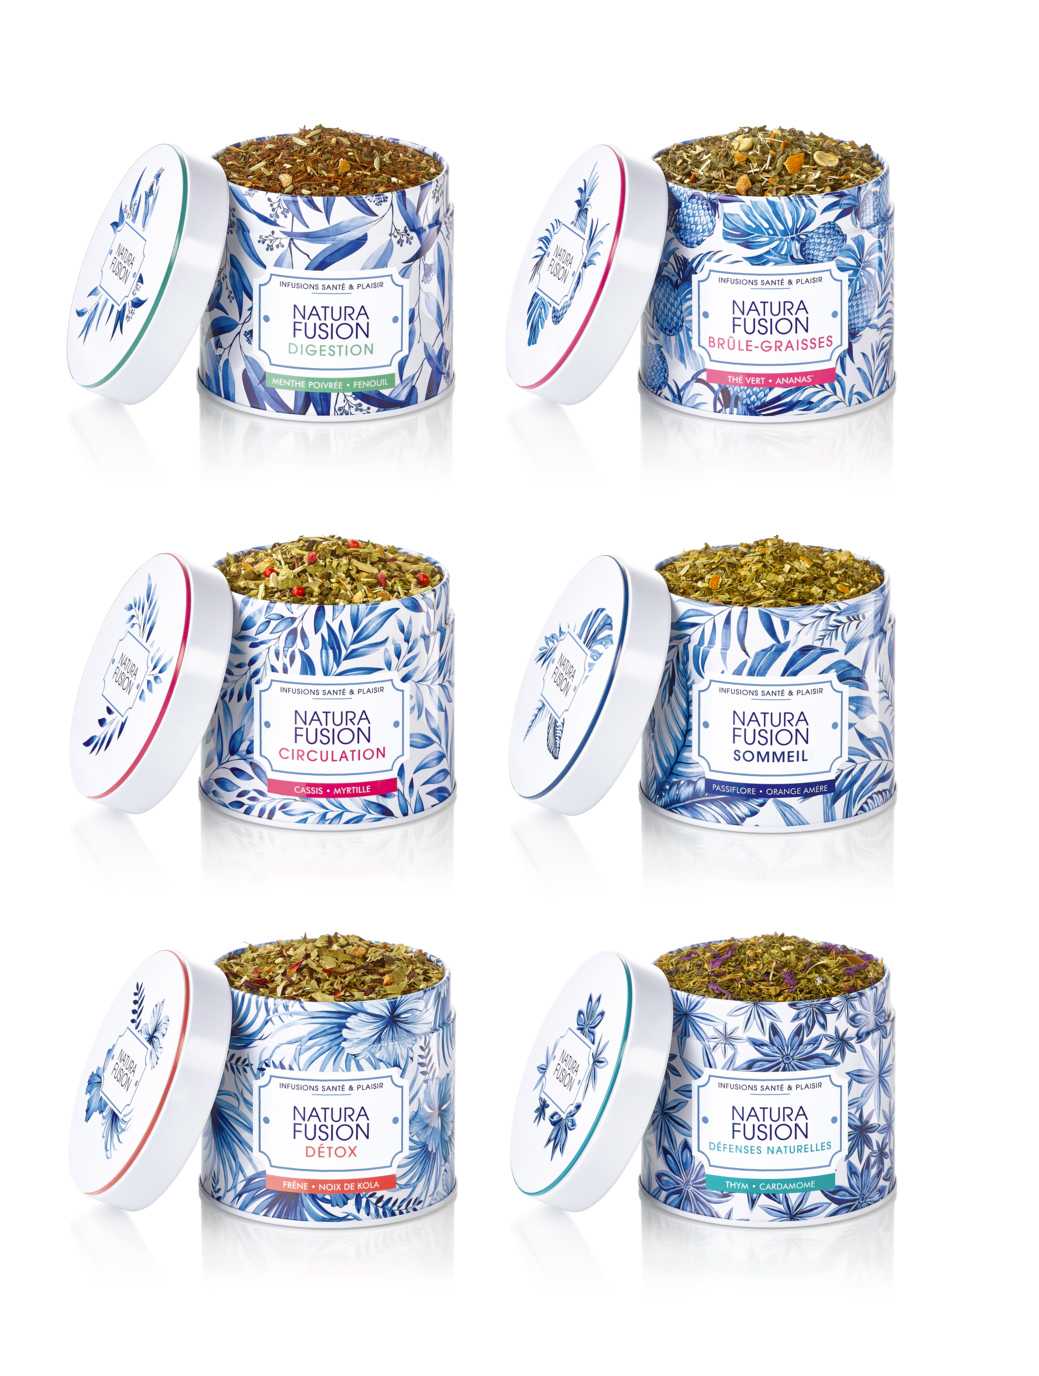 Natura Fusion - is a French brand of natural herbal teas with supplements.